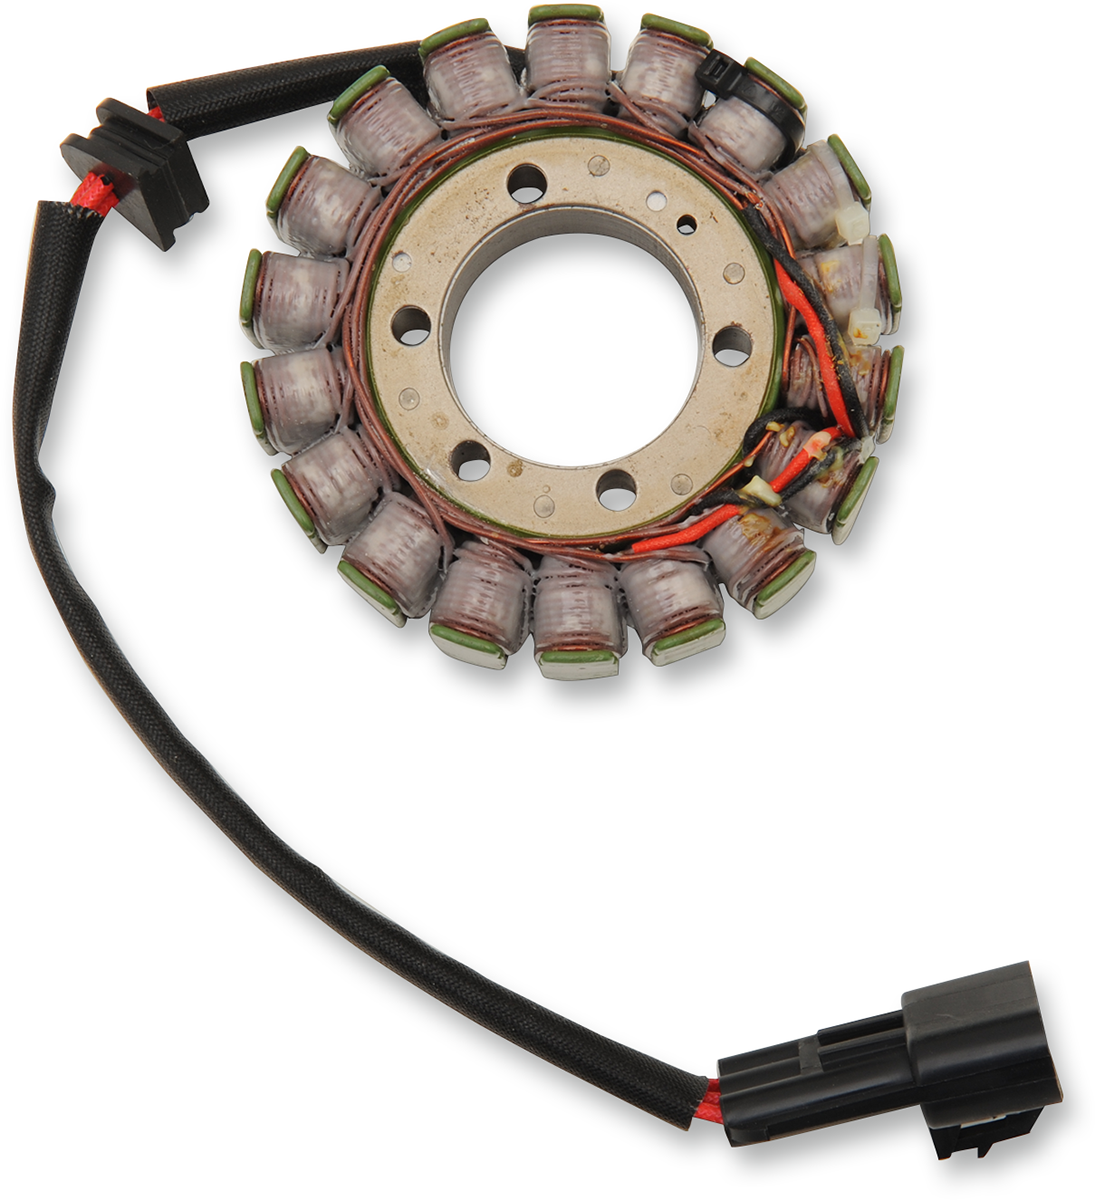 RICK'S MOTORSPORT ELECTRIC RECTIFIER/REGULATORS AND STATORS STATOR VICTORY V92